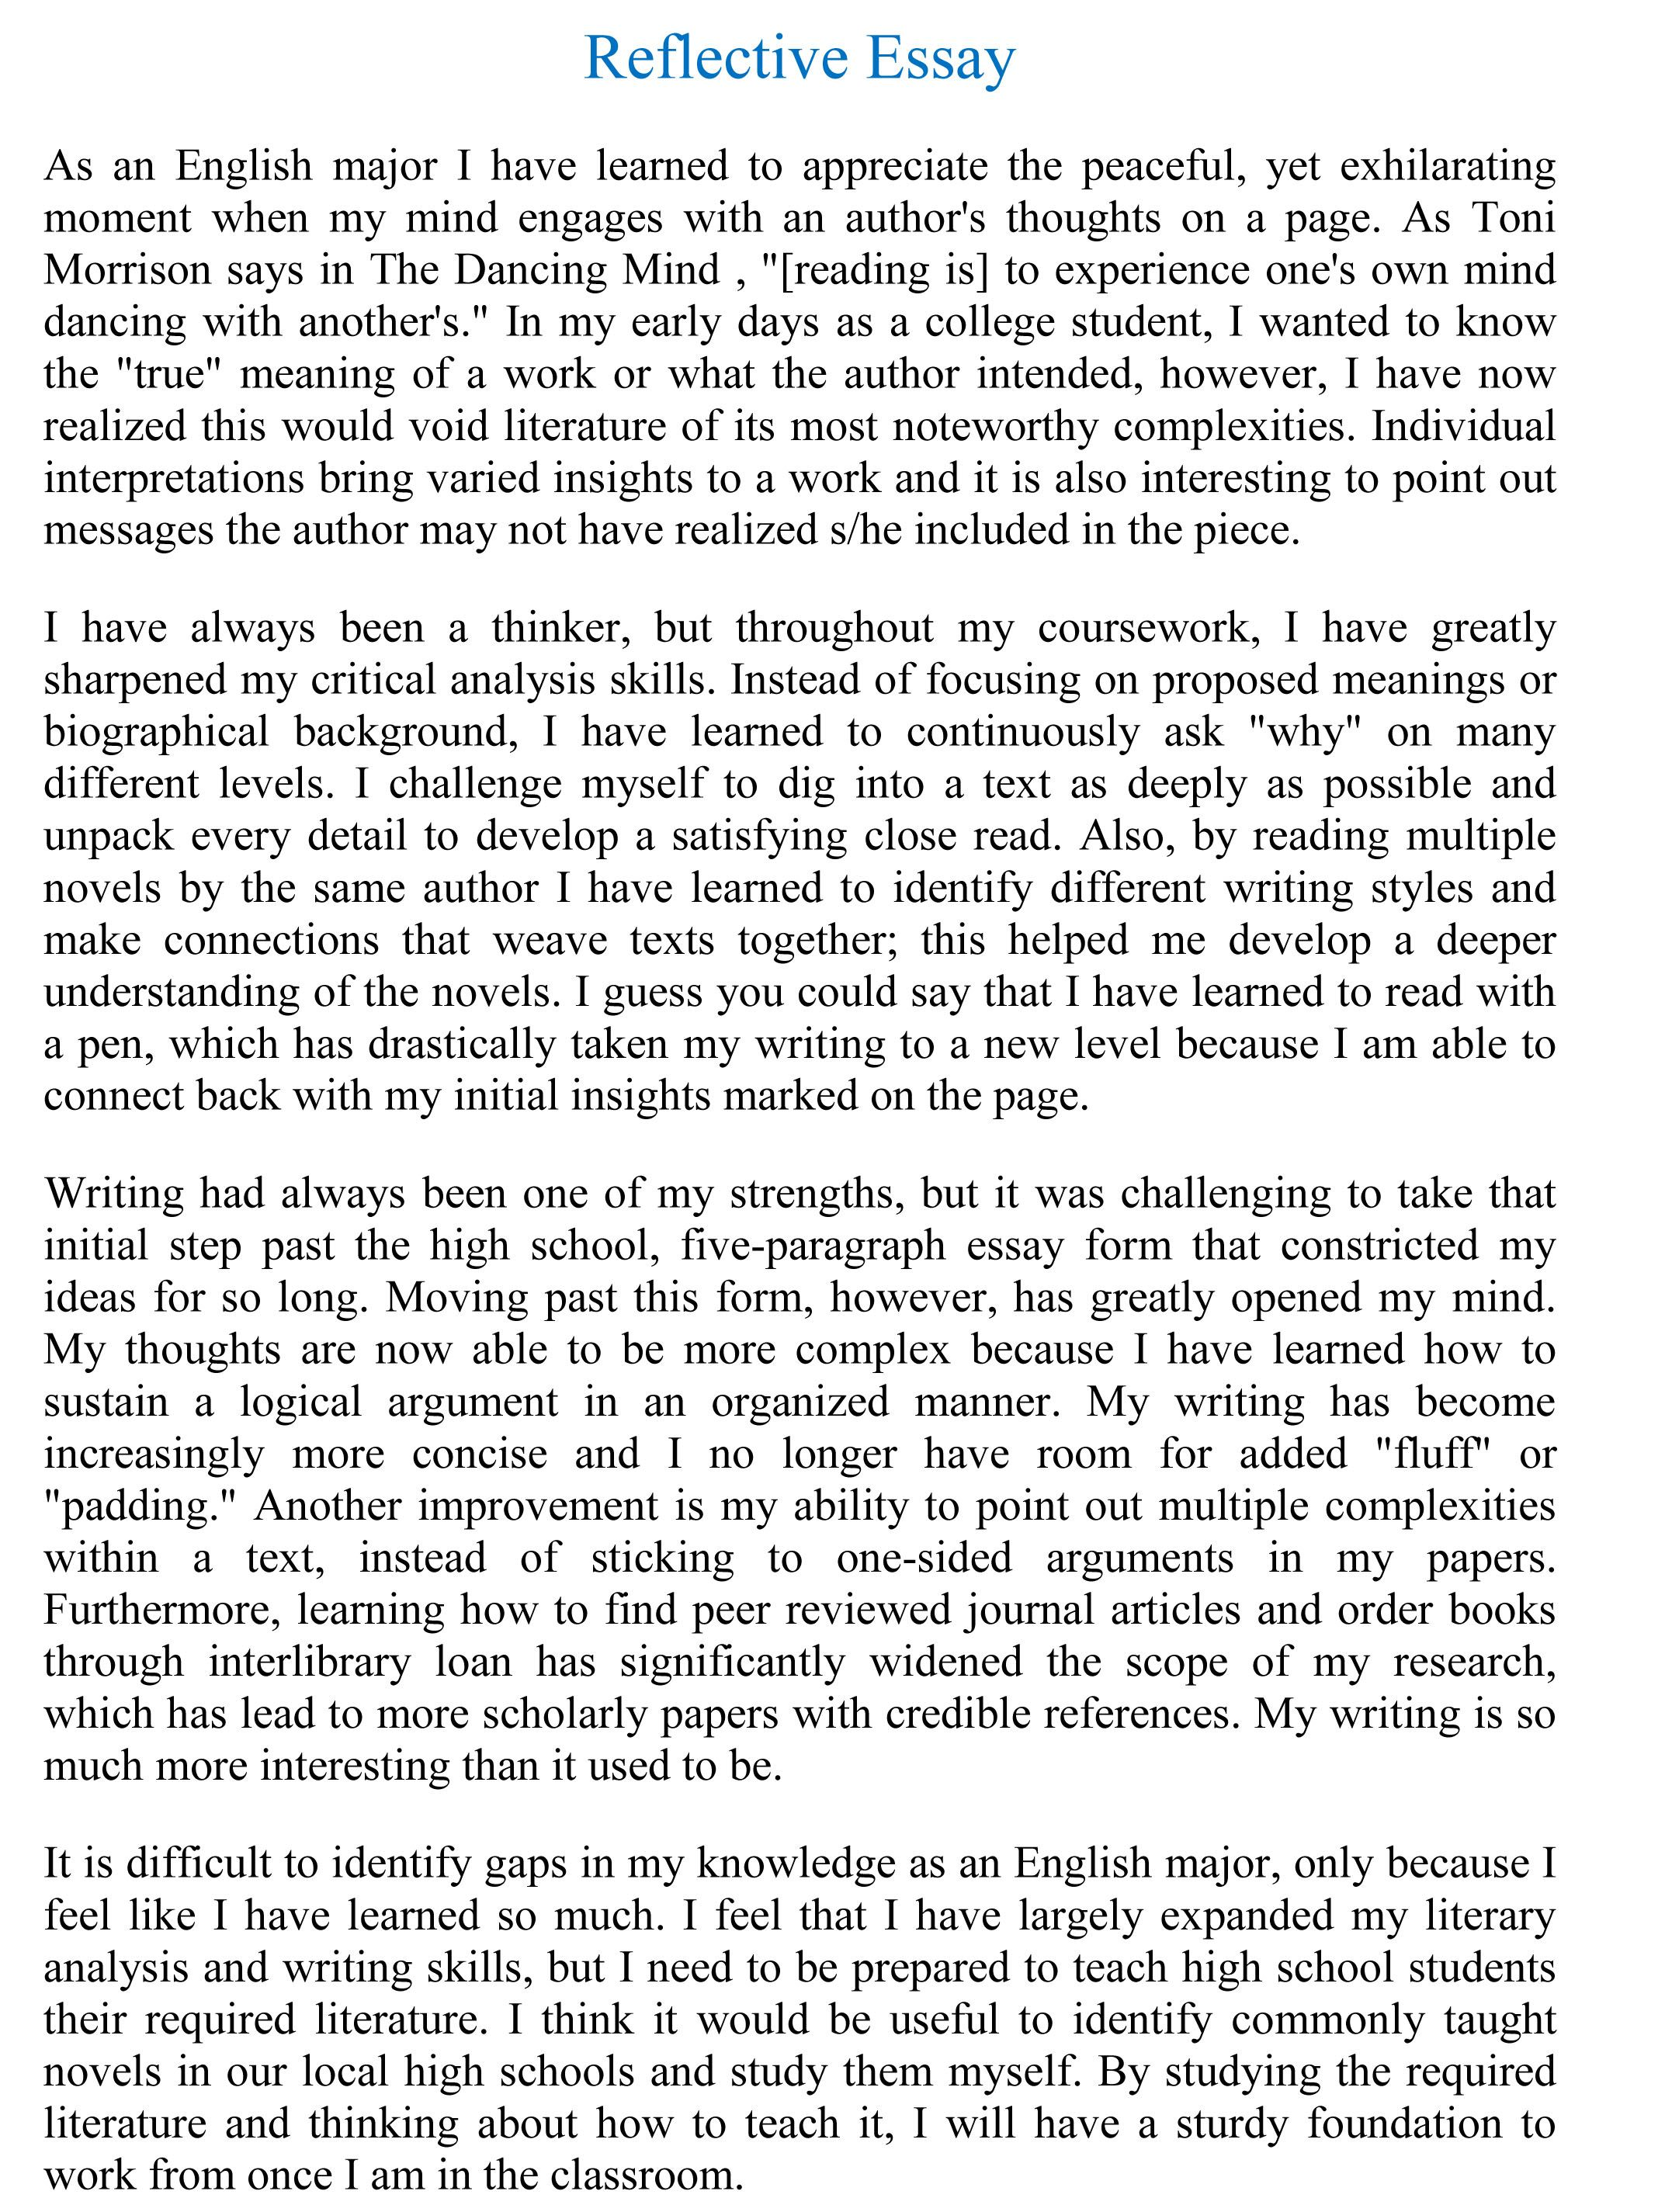 reflection essay on english Below, i'll show you how to create a killer reflective essay outline, and i'll even give you a downloadable template you can use to make your own outline.